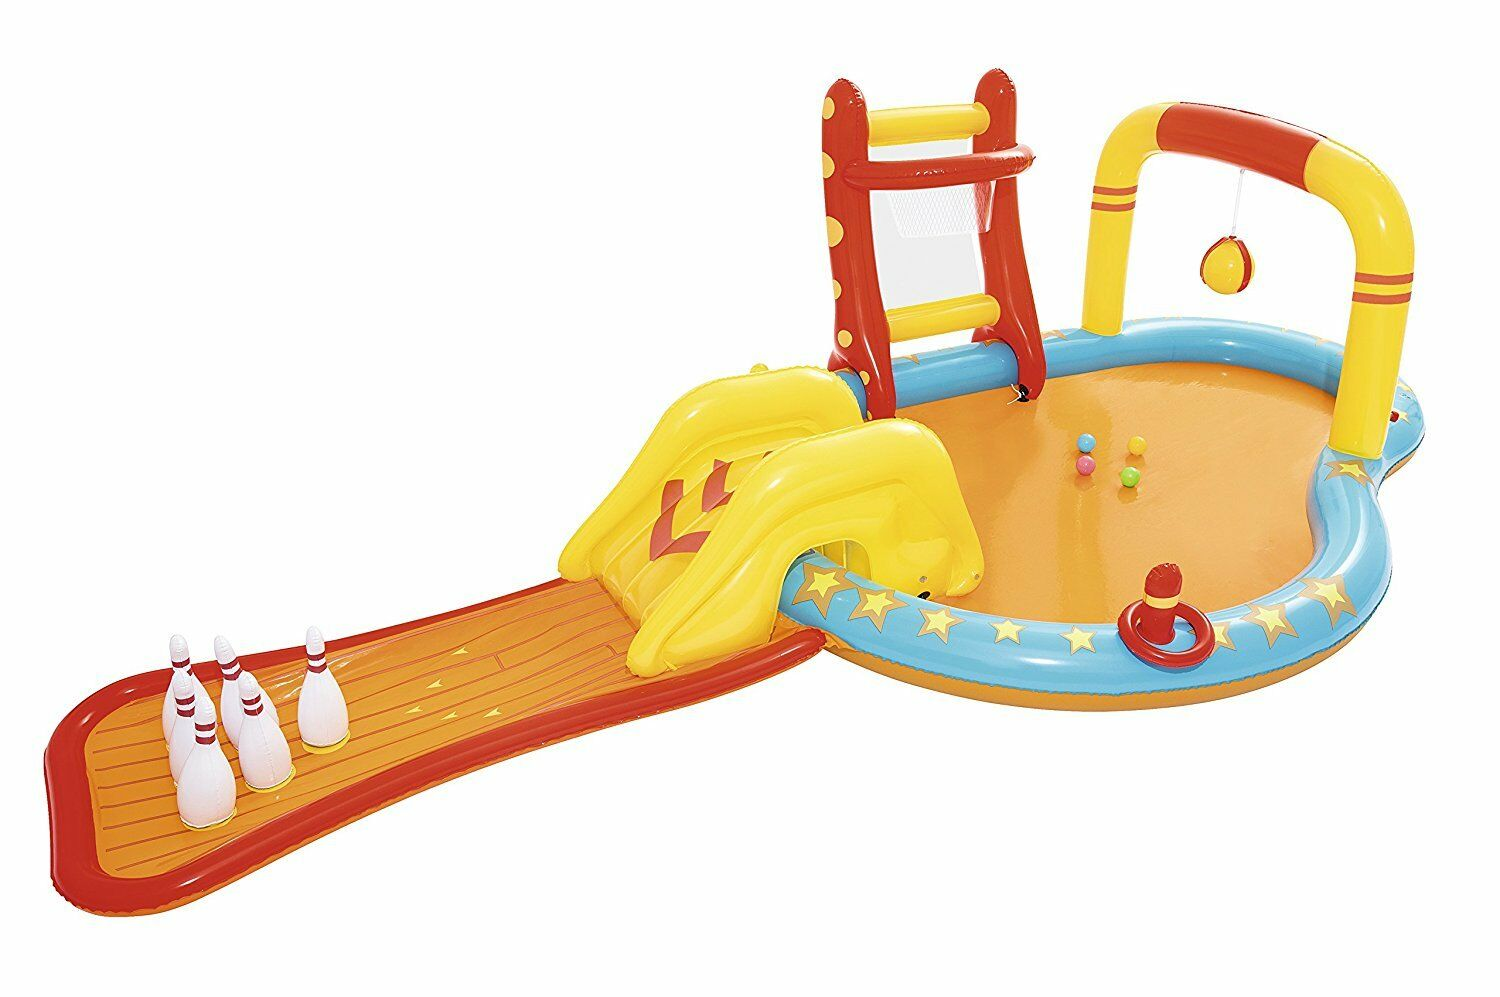 Bestway Inflatable Kids Water Play Center - Lil' Champ Pool Multiple Activities